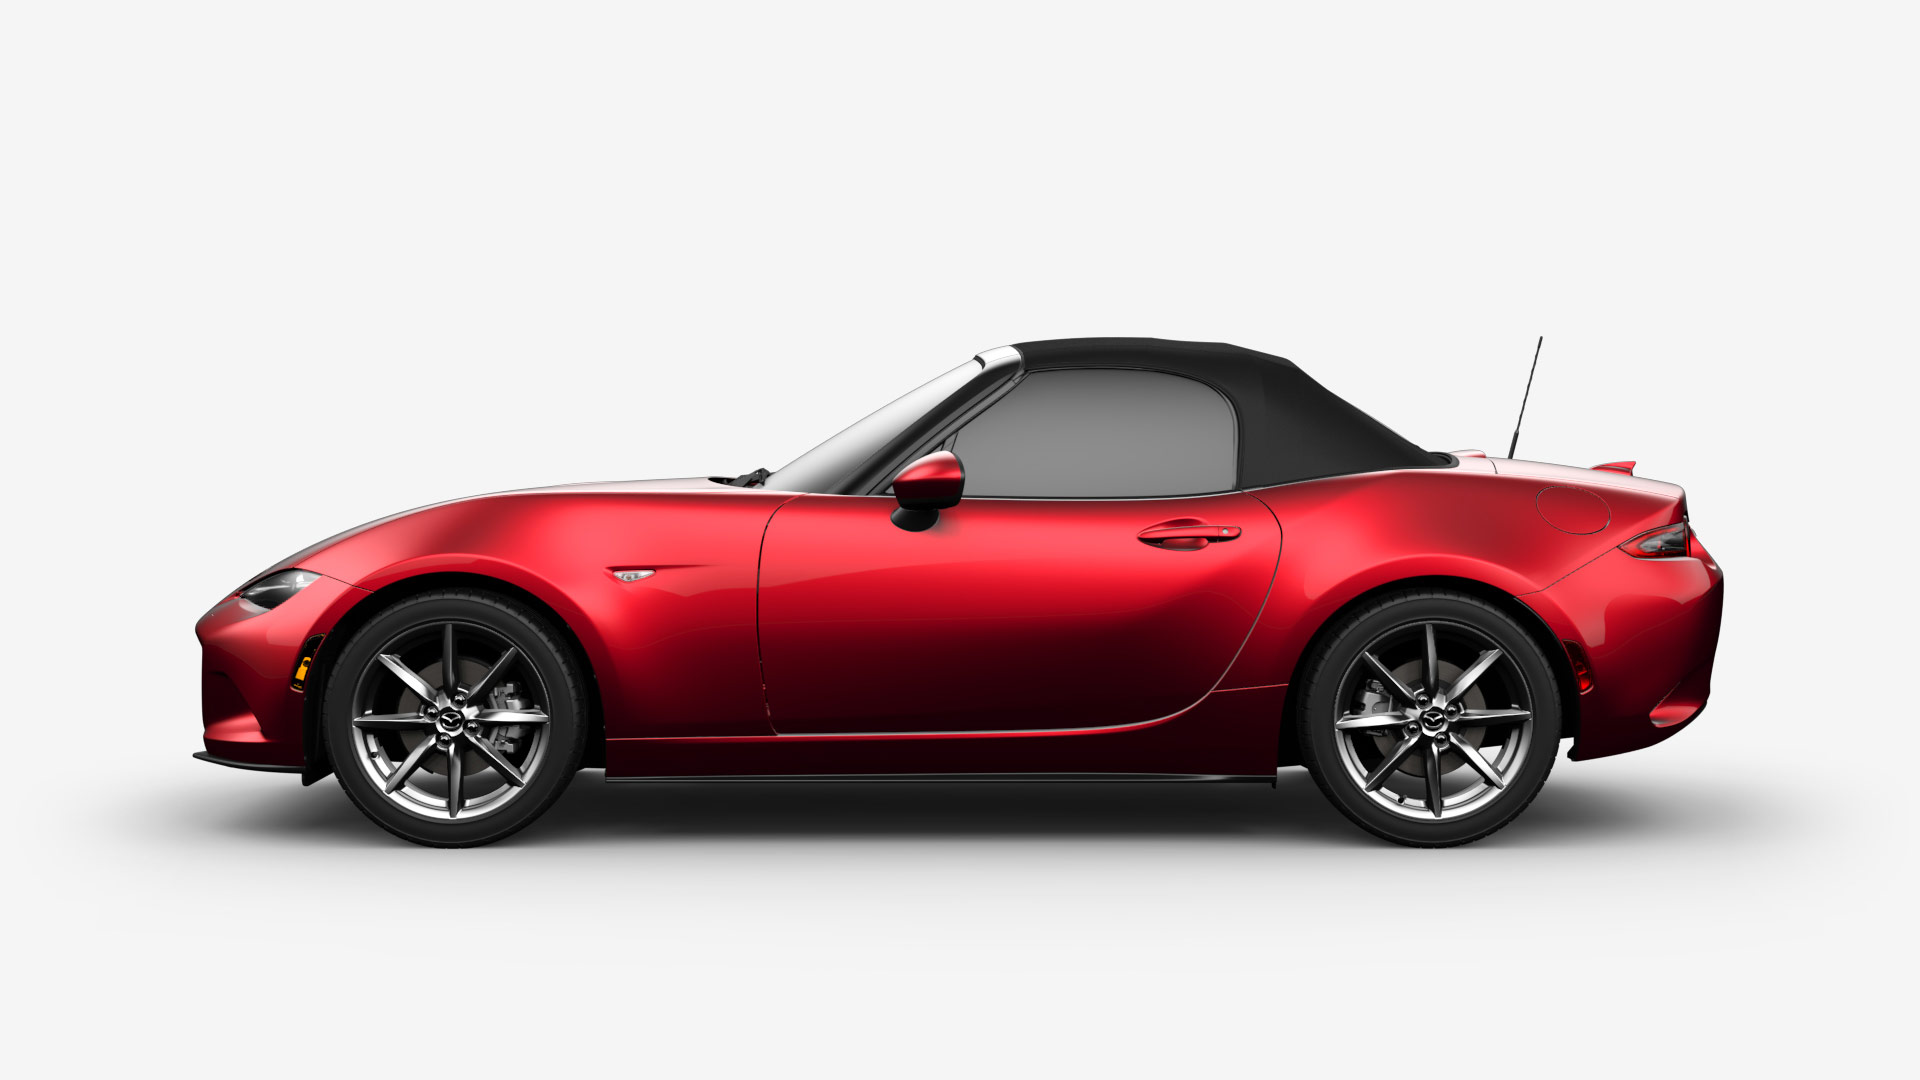 Good 2018 Mazda MX 5 Miata Convertible Roadster | Mazda USA